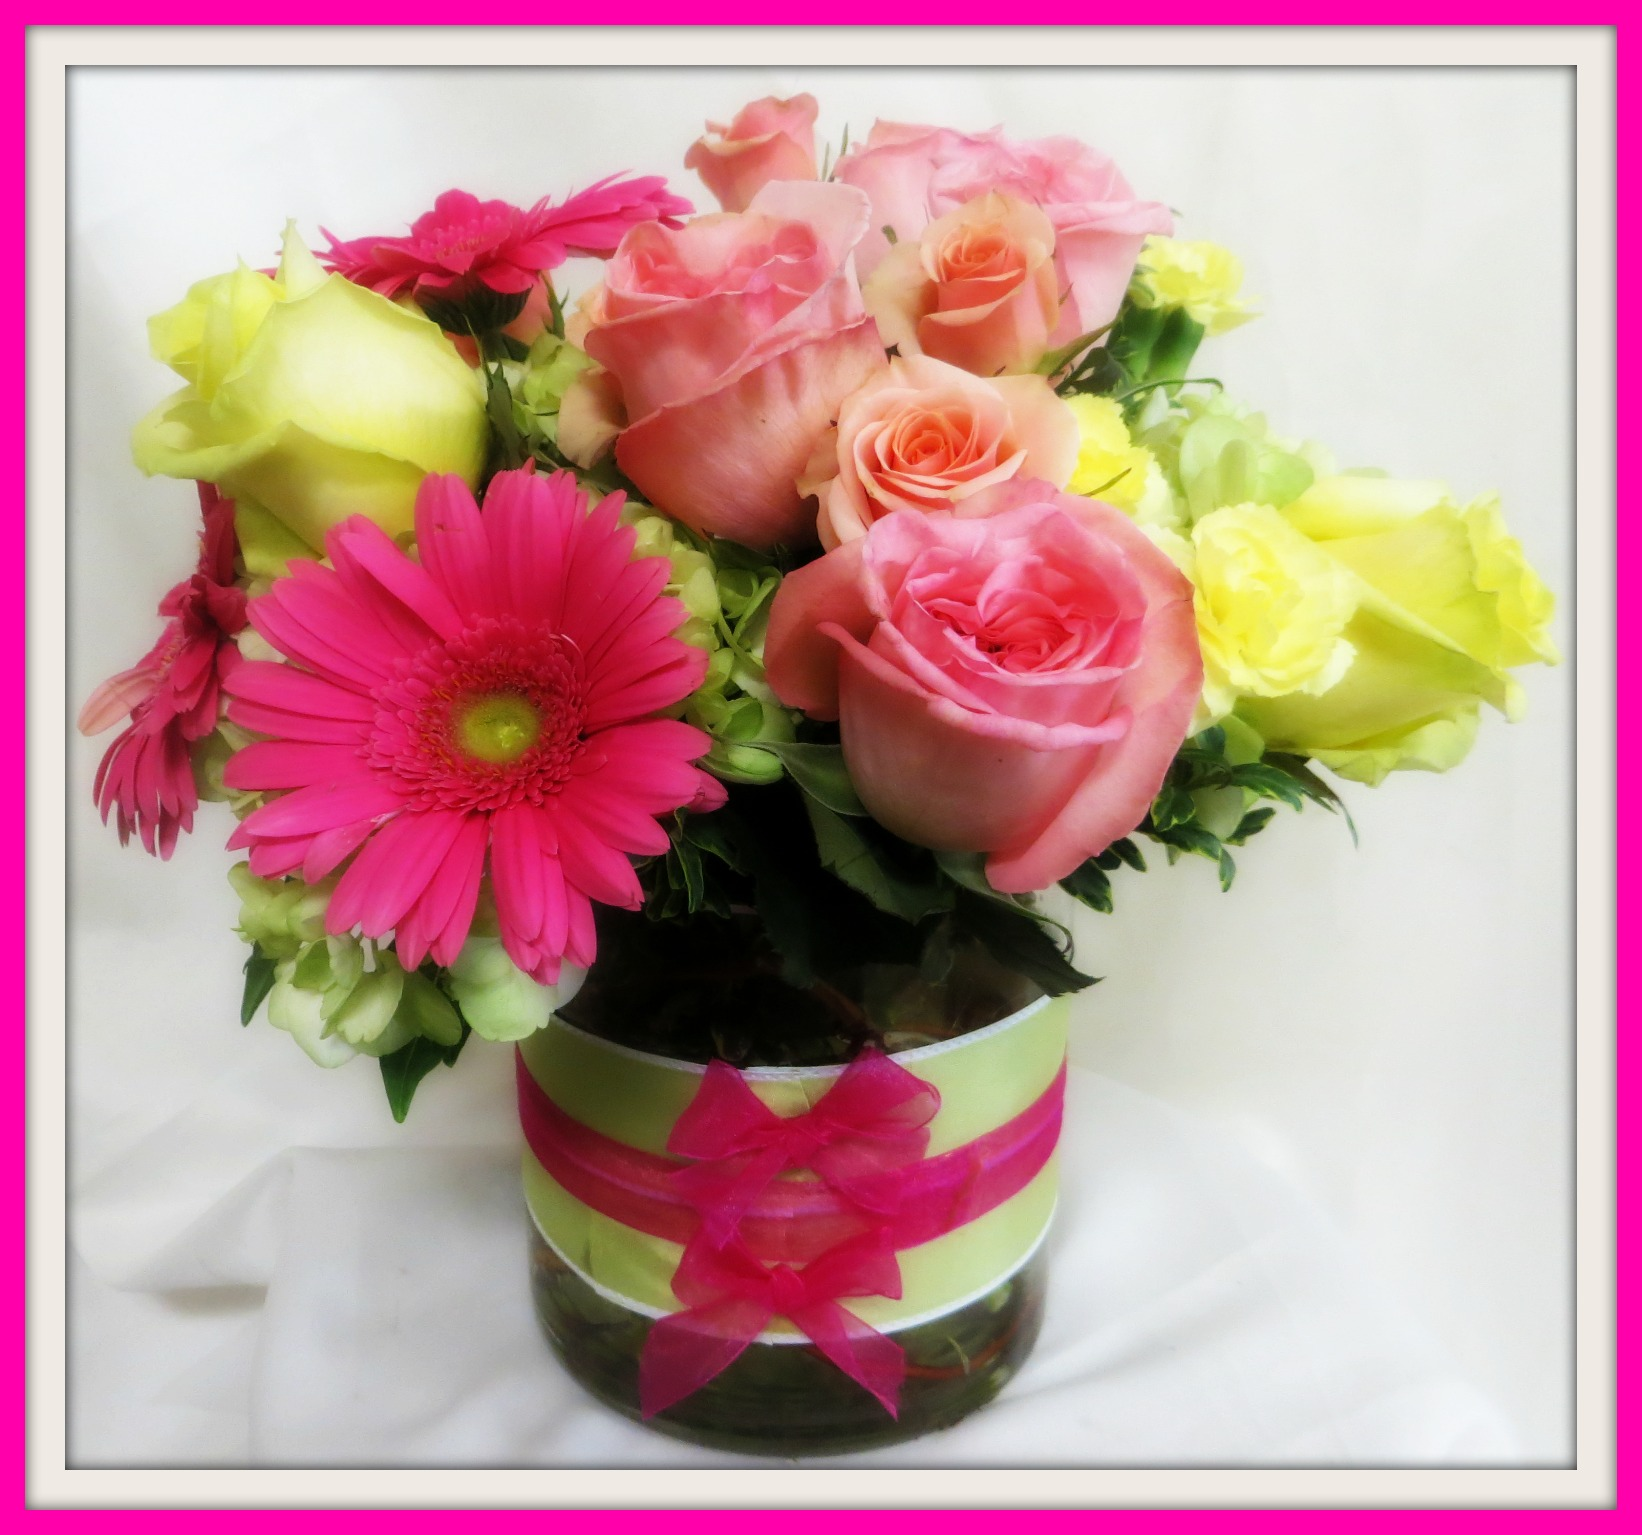 Clear lake flowers flower shop delivery 77058 77059 77062 florist tx order now for same day flower delivery mightylinksfo